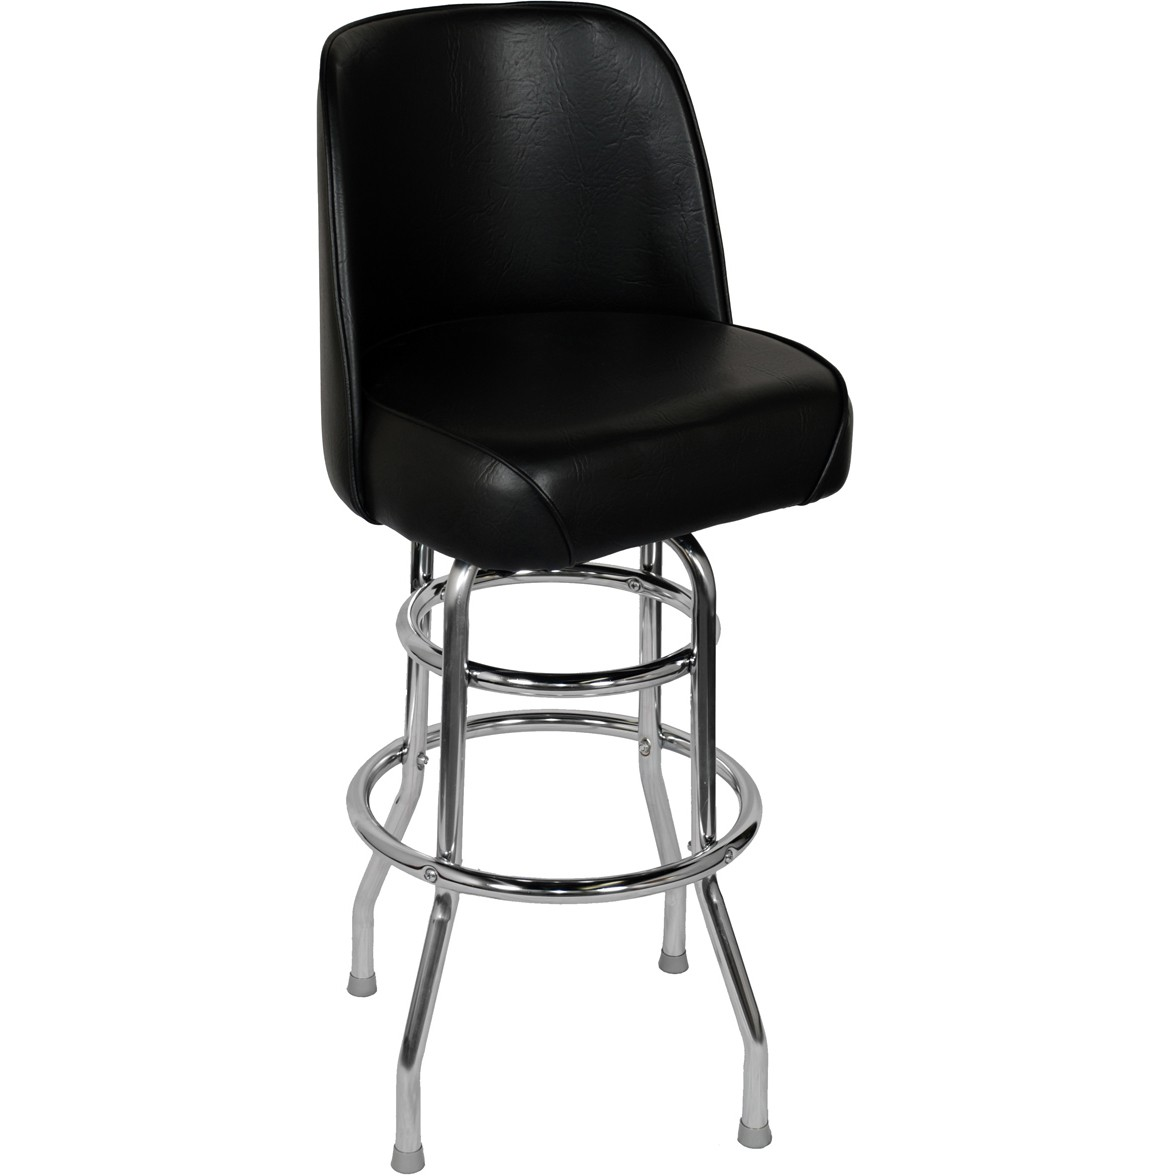 Strange Double Seat Bar Stool Jafari Ghola Beatyapartments Chair Design Images Beatyapartmentscom